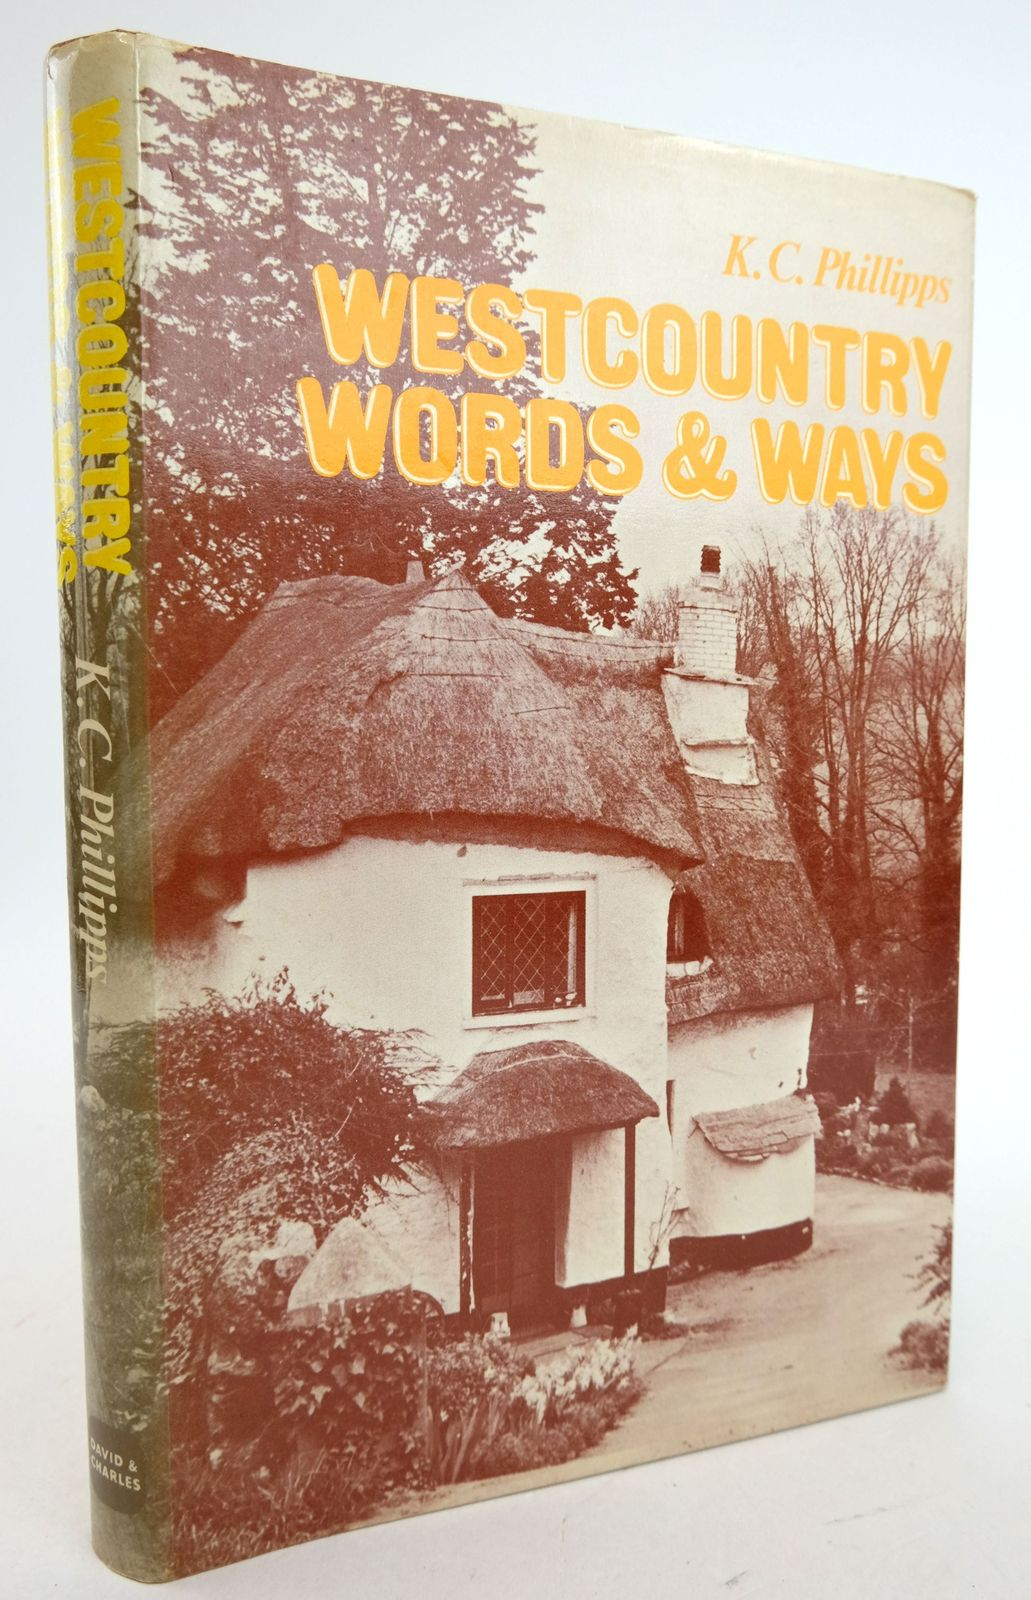 Photo of WESTCOUNTRY WORDS & WAYS- Stock Number: 1819757